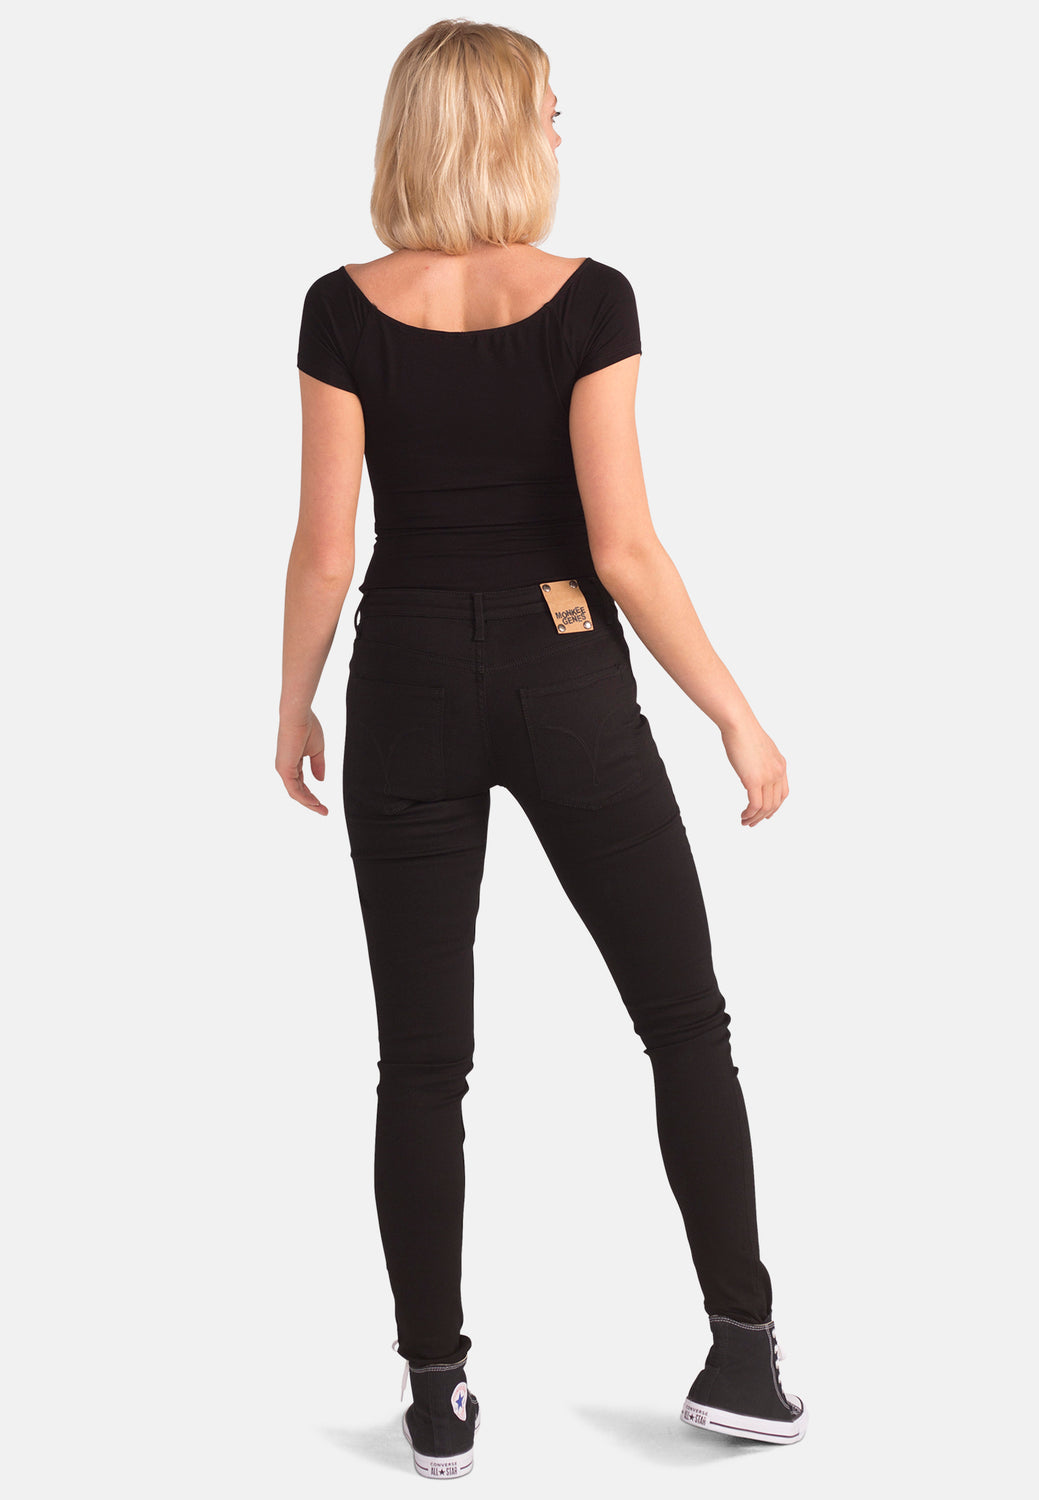 Organic Black Denim Super Skinny Jeans - Monkee Genes Organic Jeans Denim - Women's Silhouette Monkee Genes Official  Monkee Genes Official